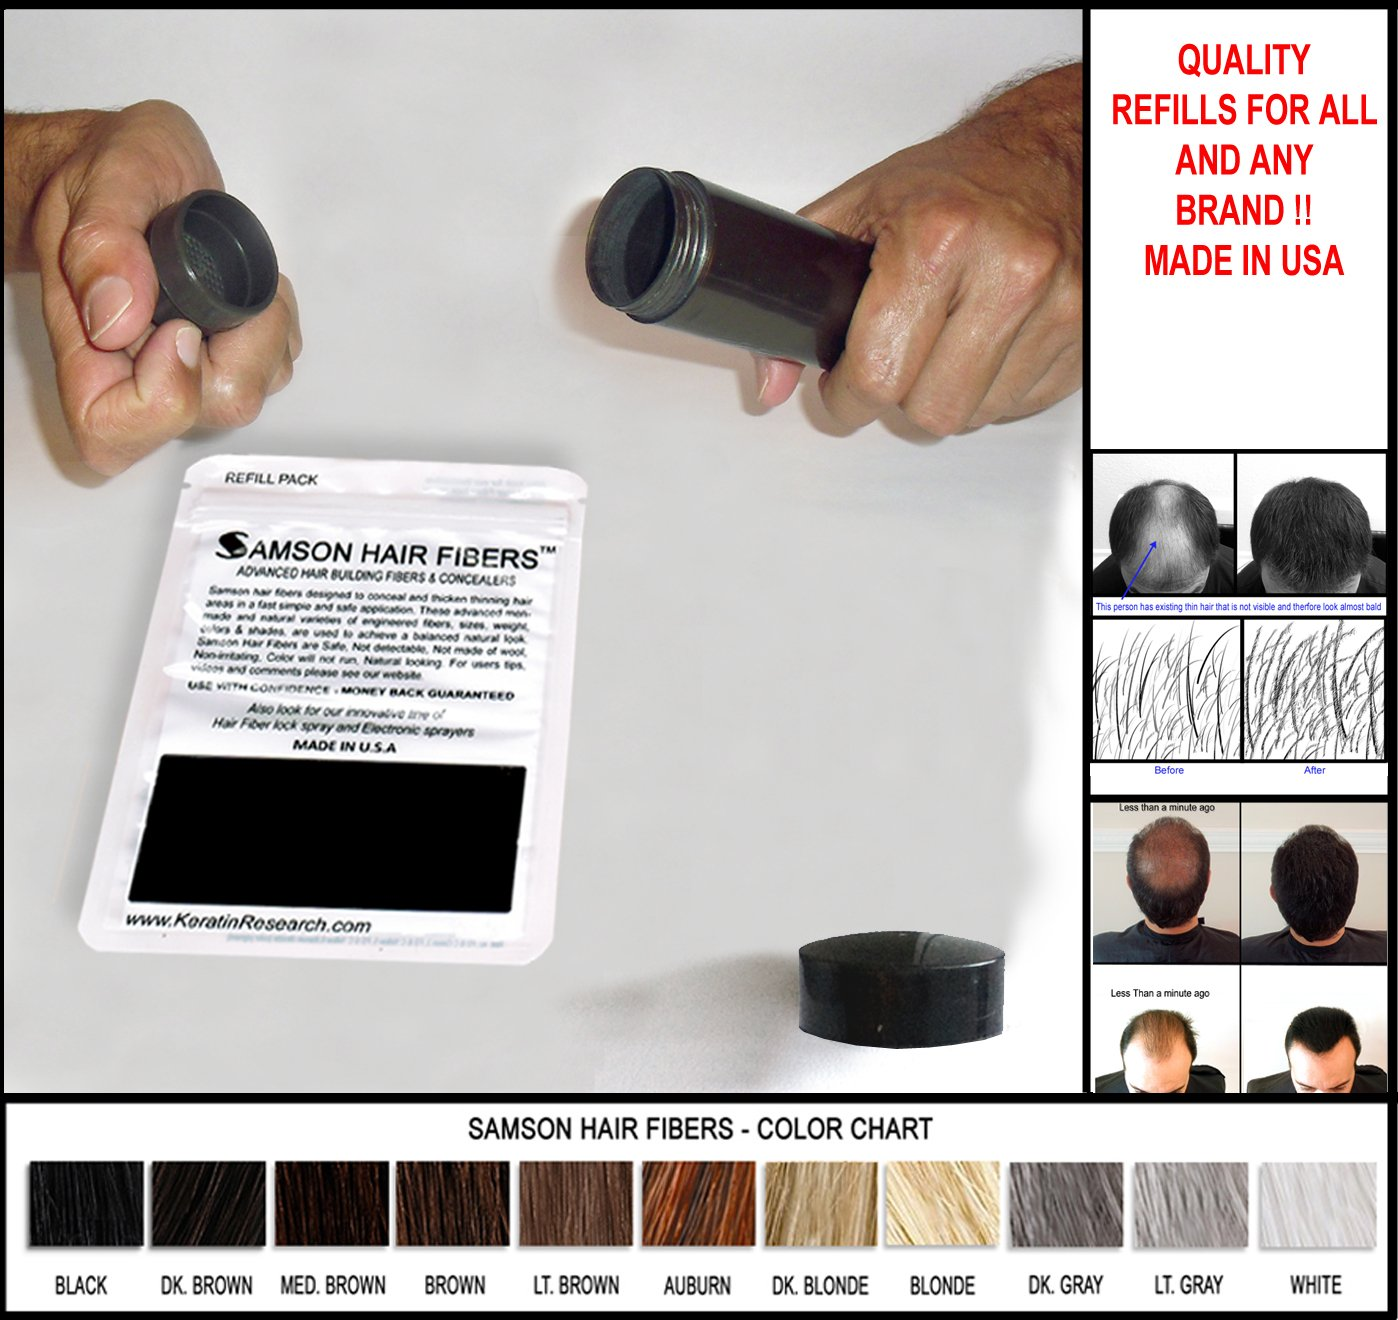 Original Samson Hair Building Fibers DARK BROWN 50gr Refill suitable for all brands FREE SHIPPING USA Keratin Research